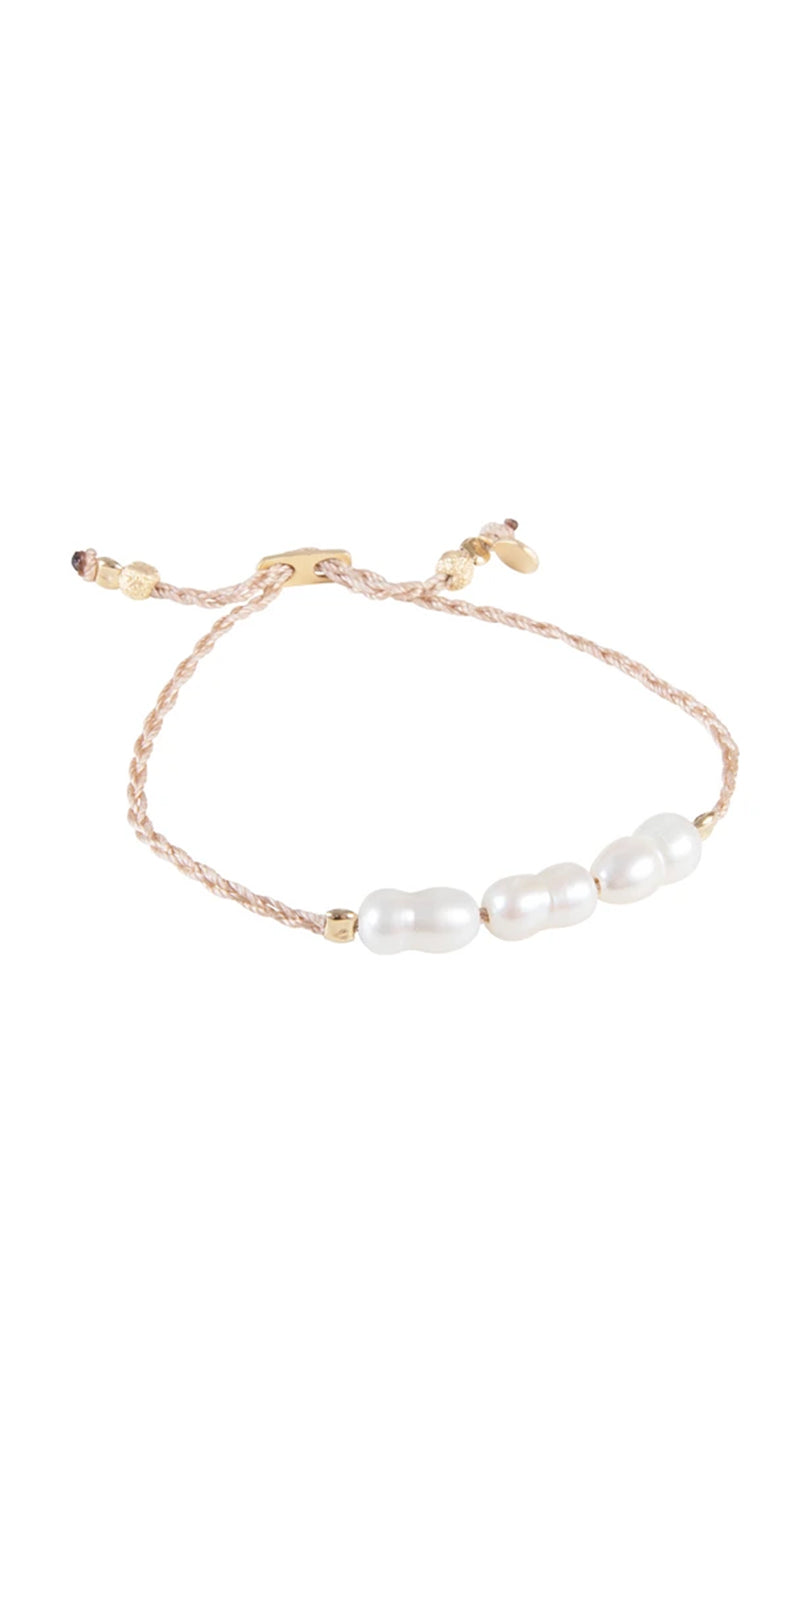 FAIRLEY RICE PEARL ROPE BRACELET